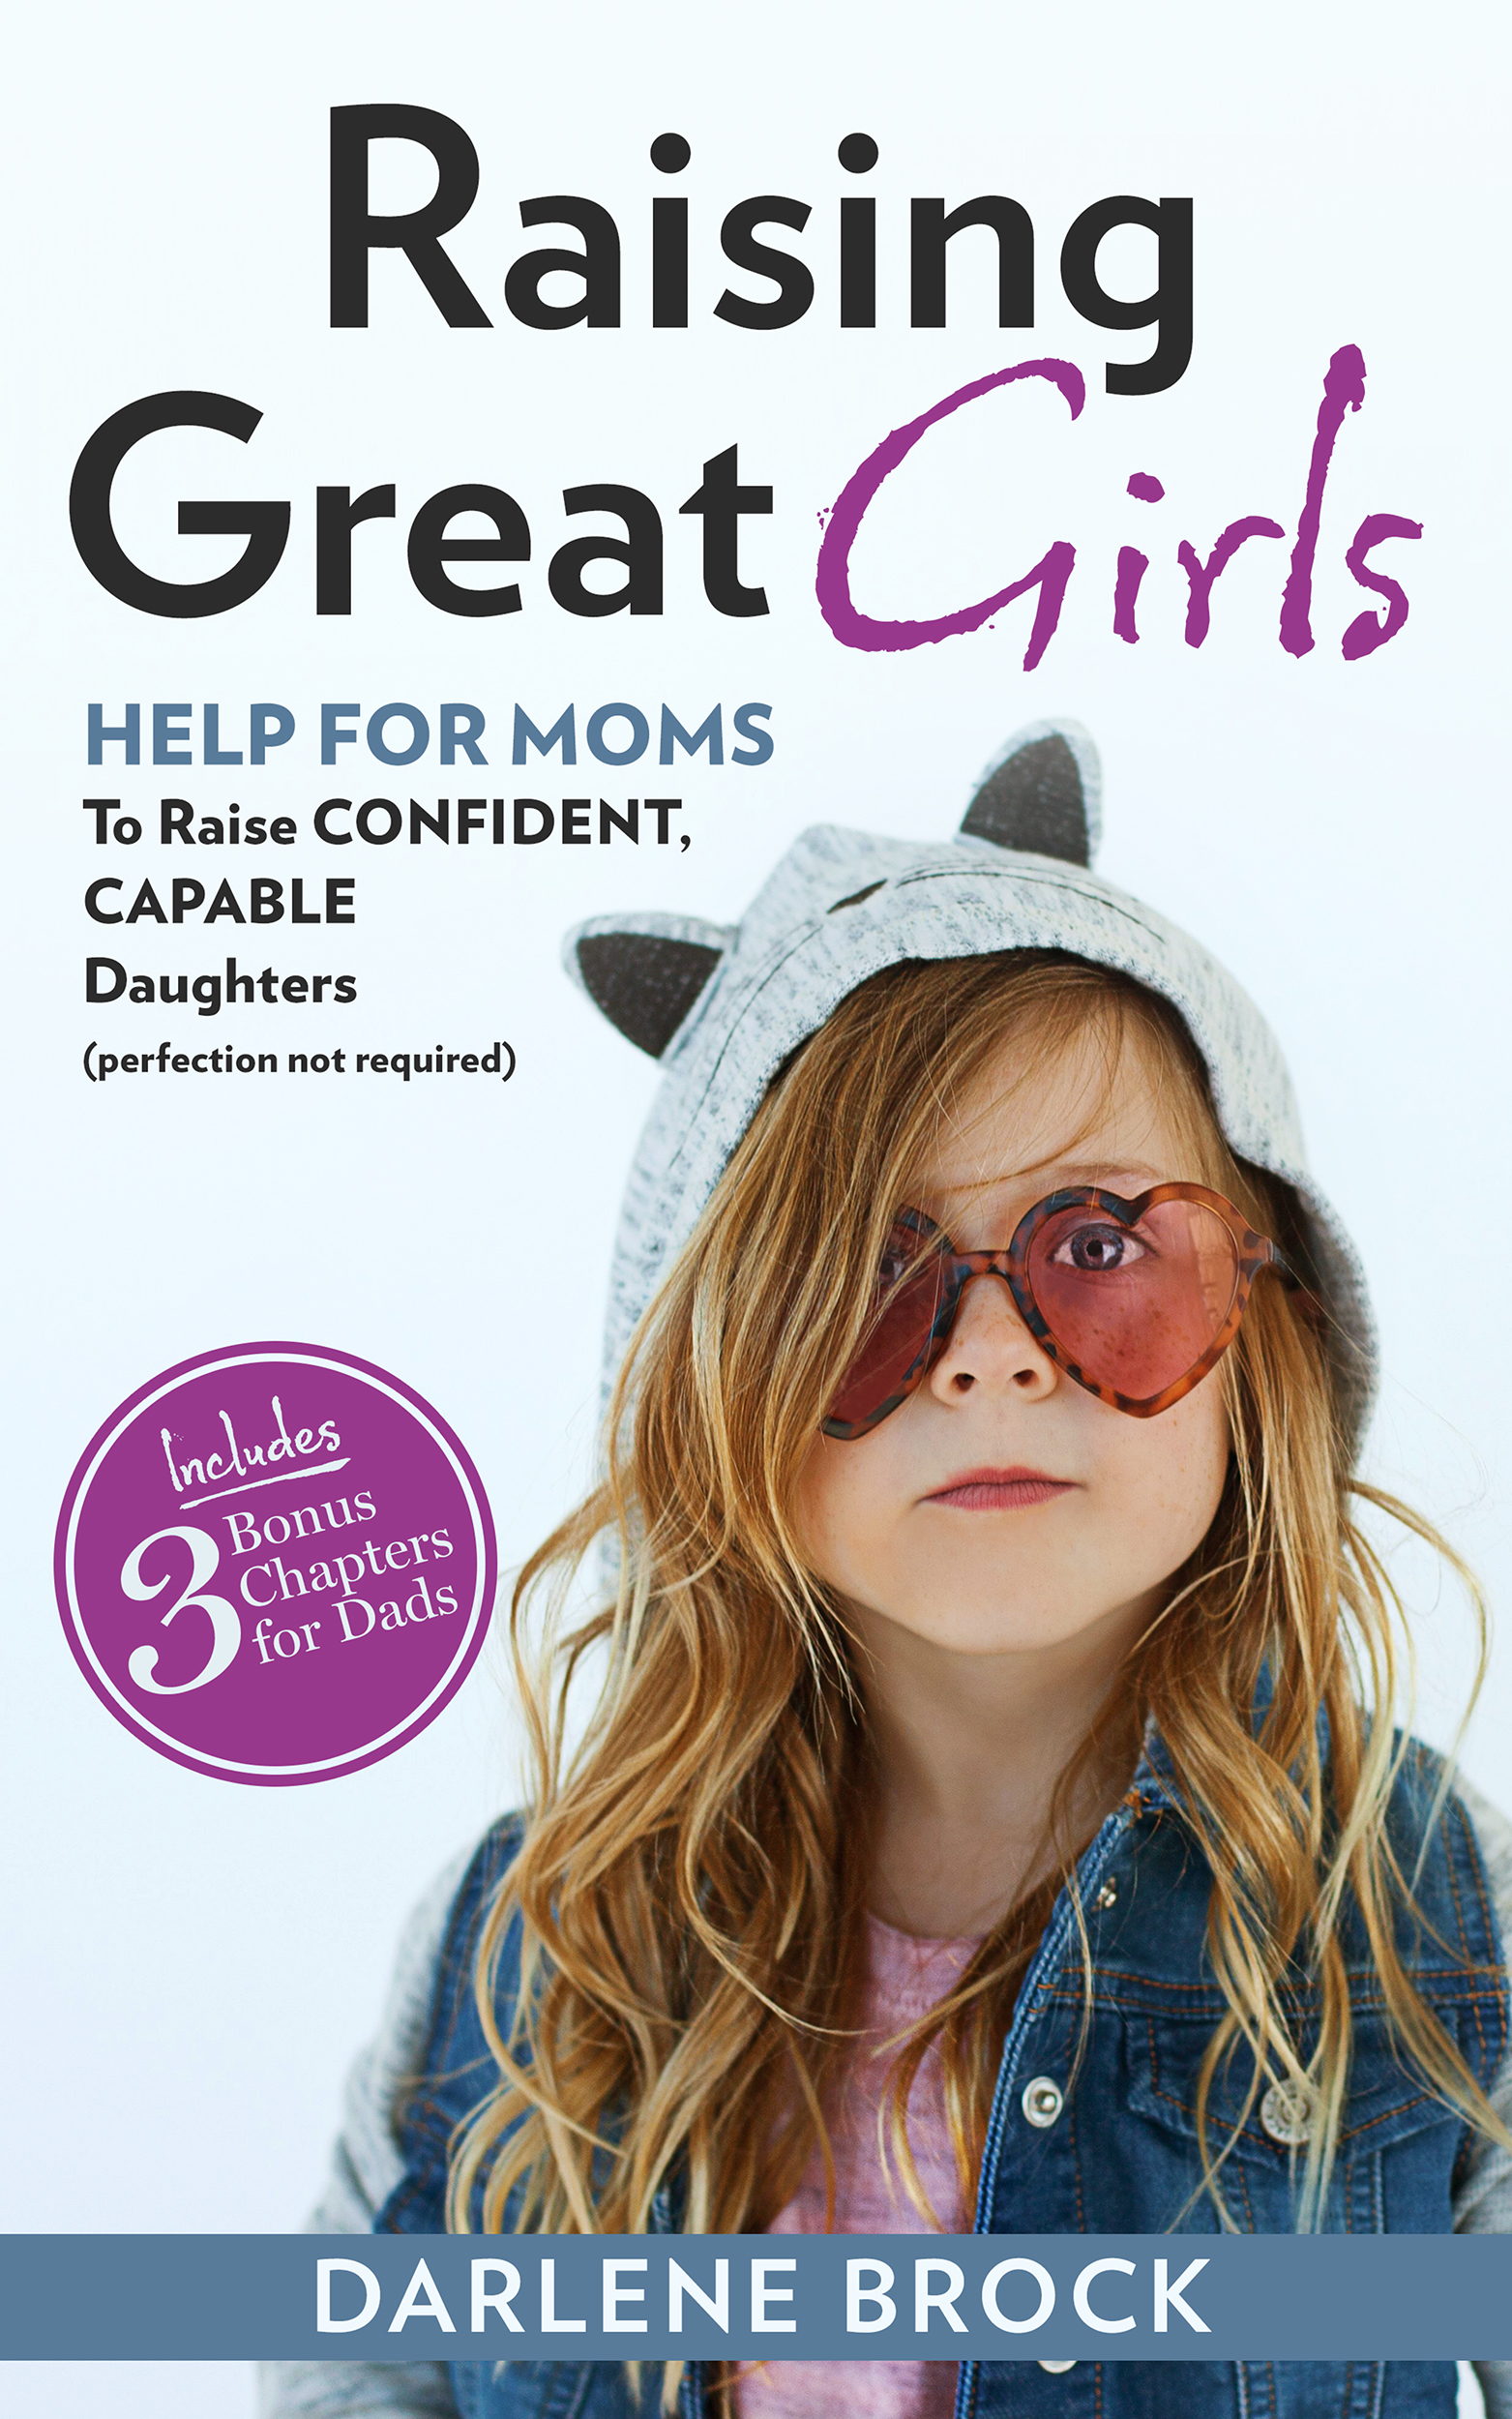 Raising Great Girls - eBook small cover image.jpg